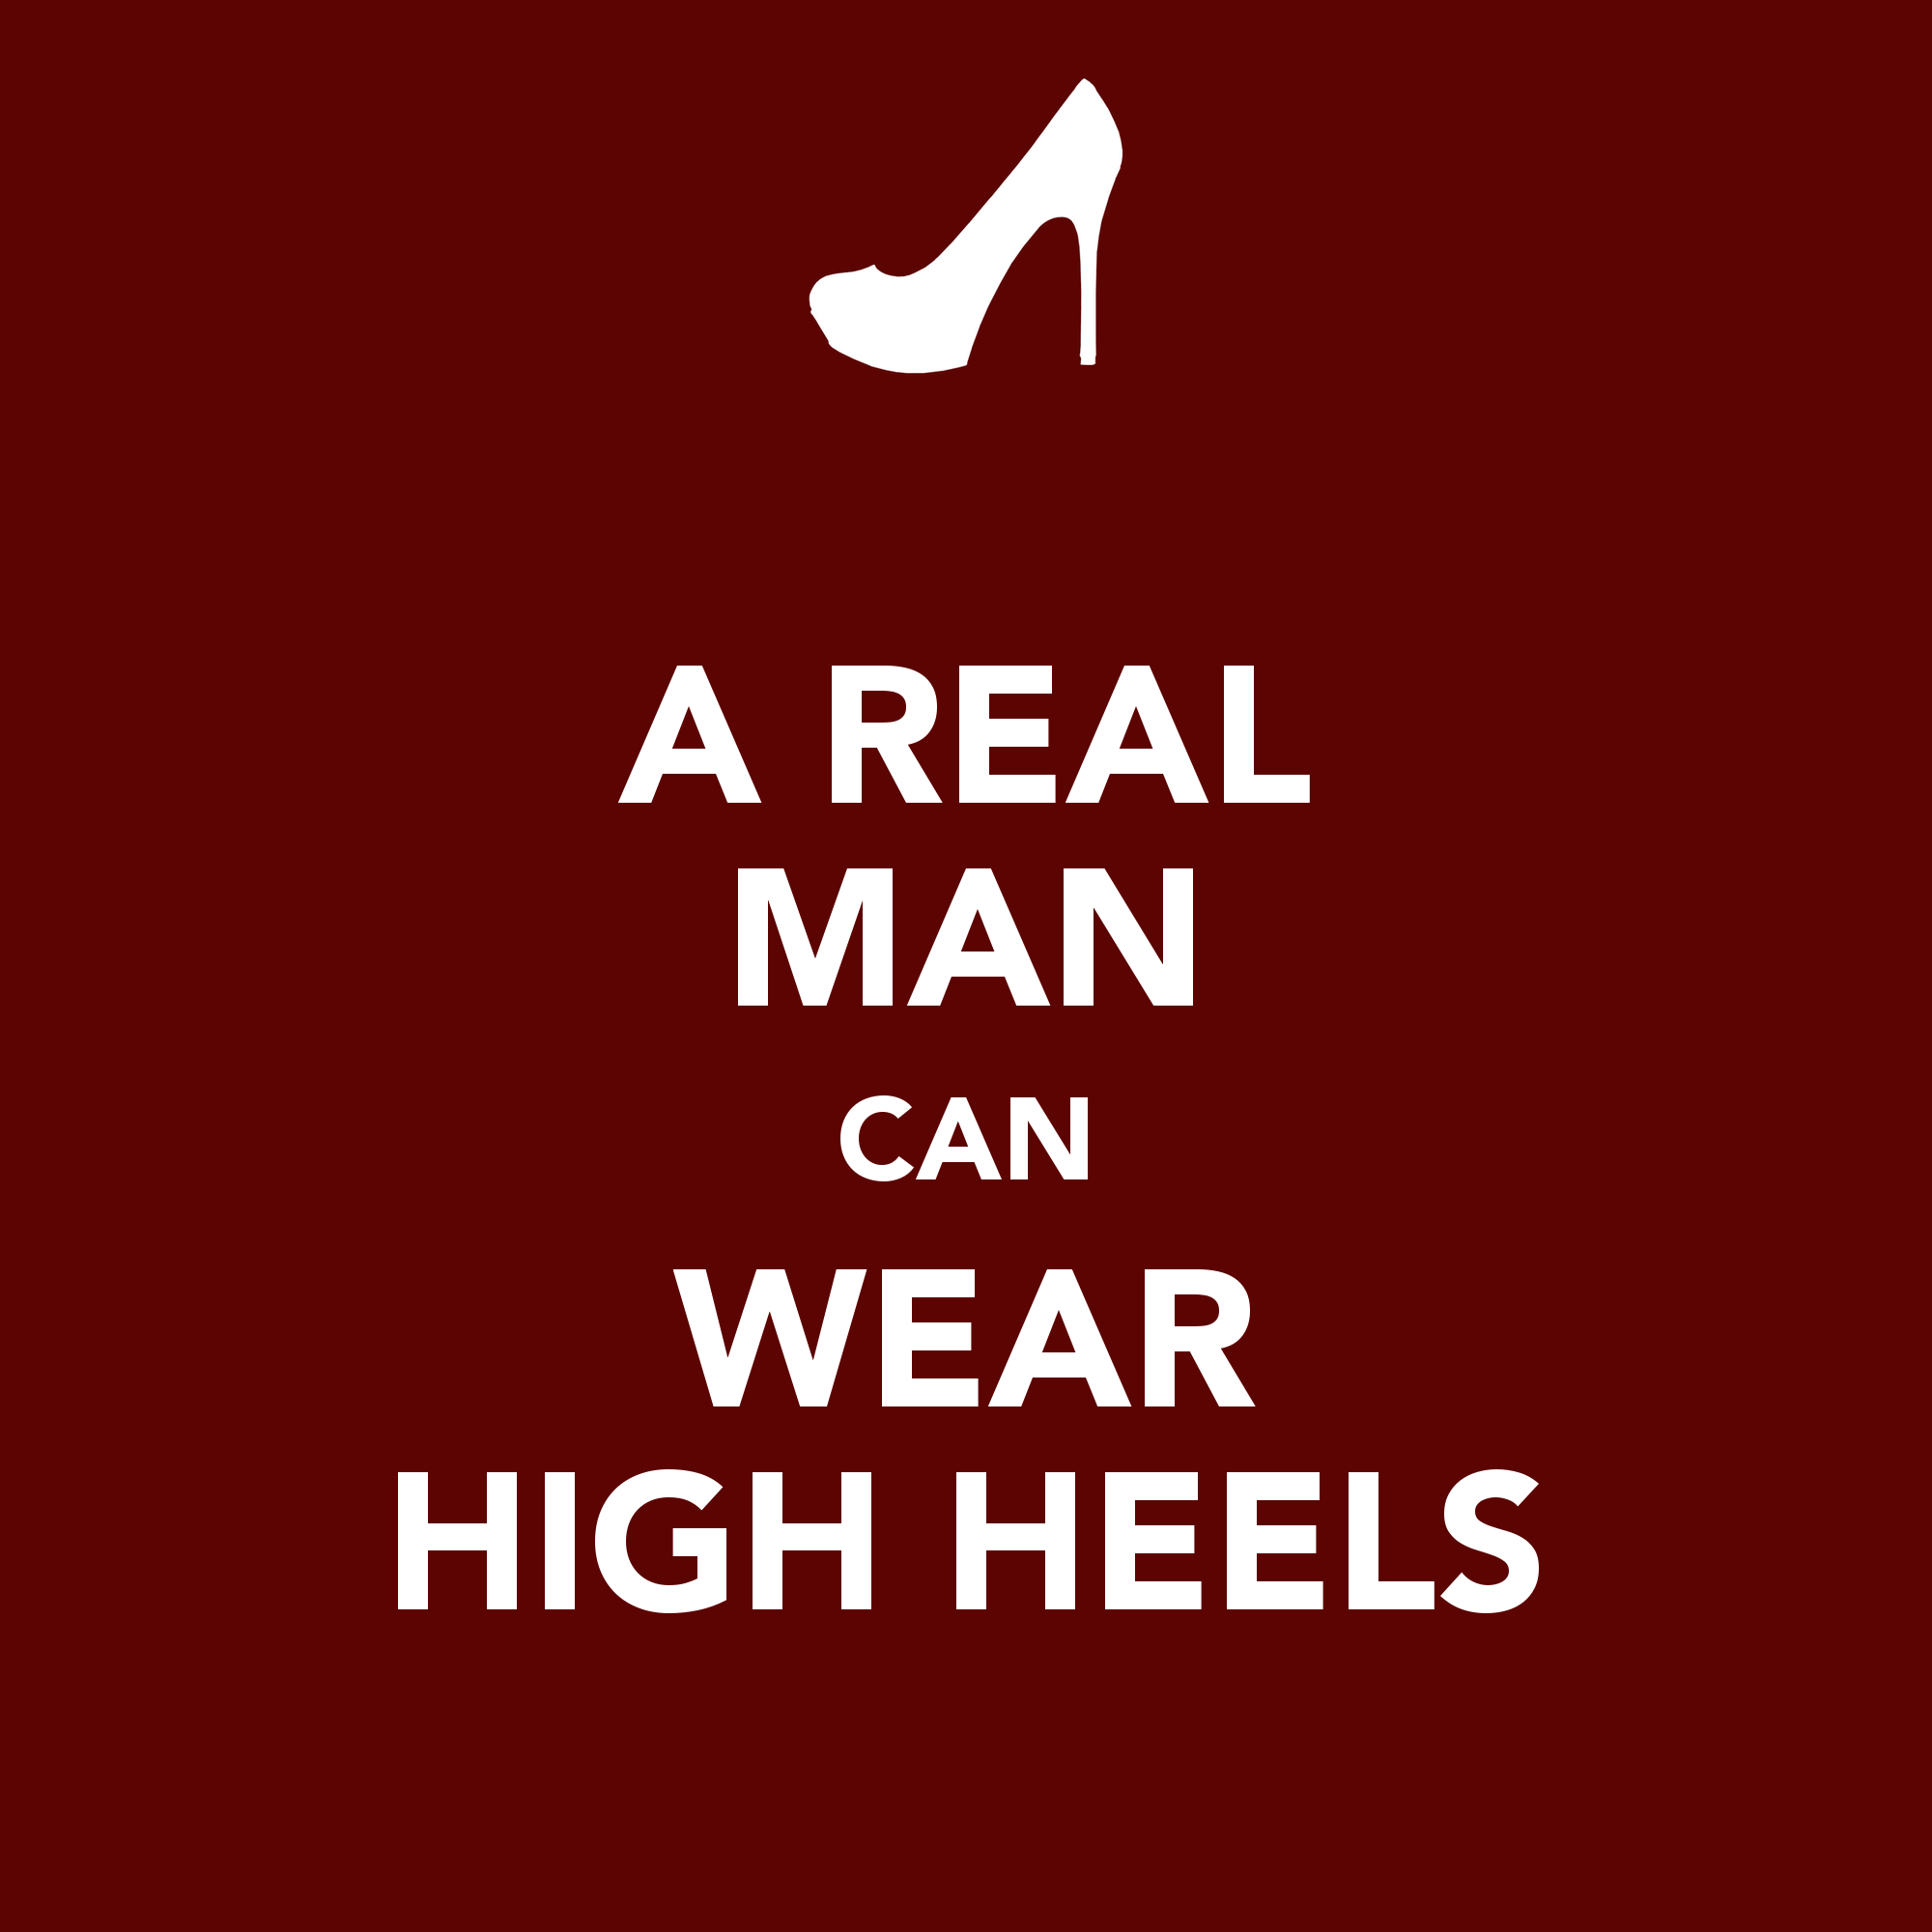 Can men wear high heels?